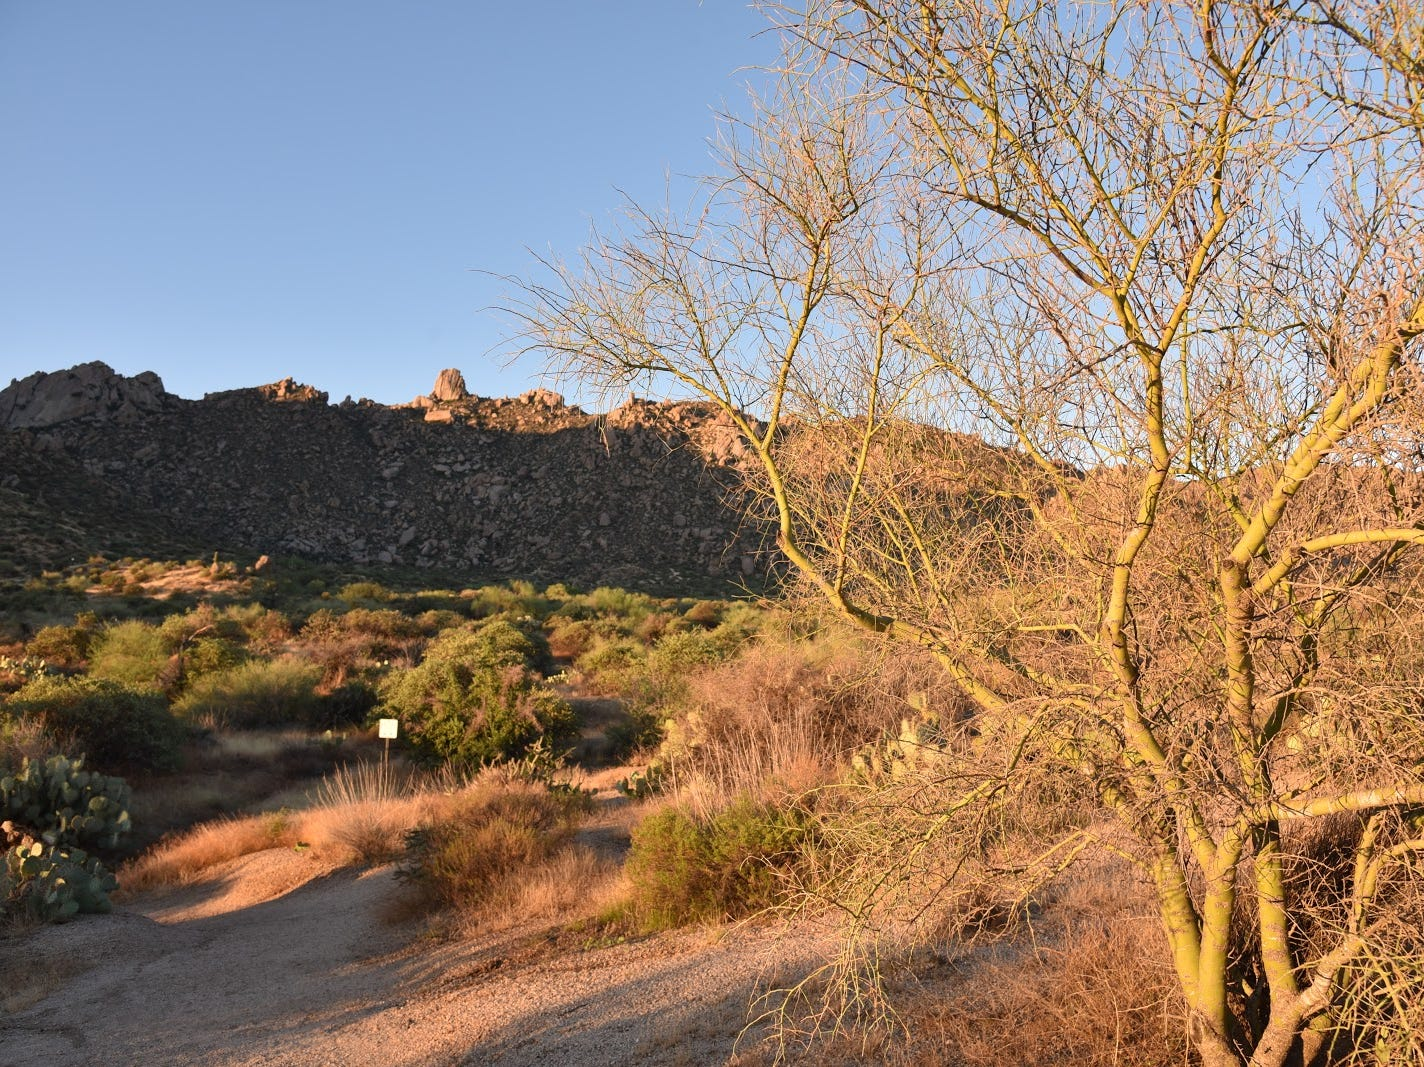 View of Tom's Thumb from near the trailhead.